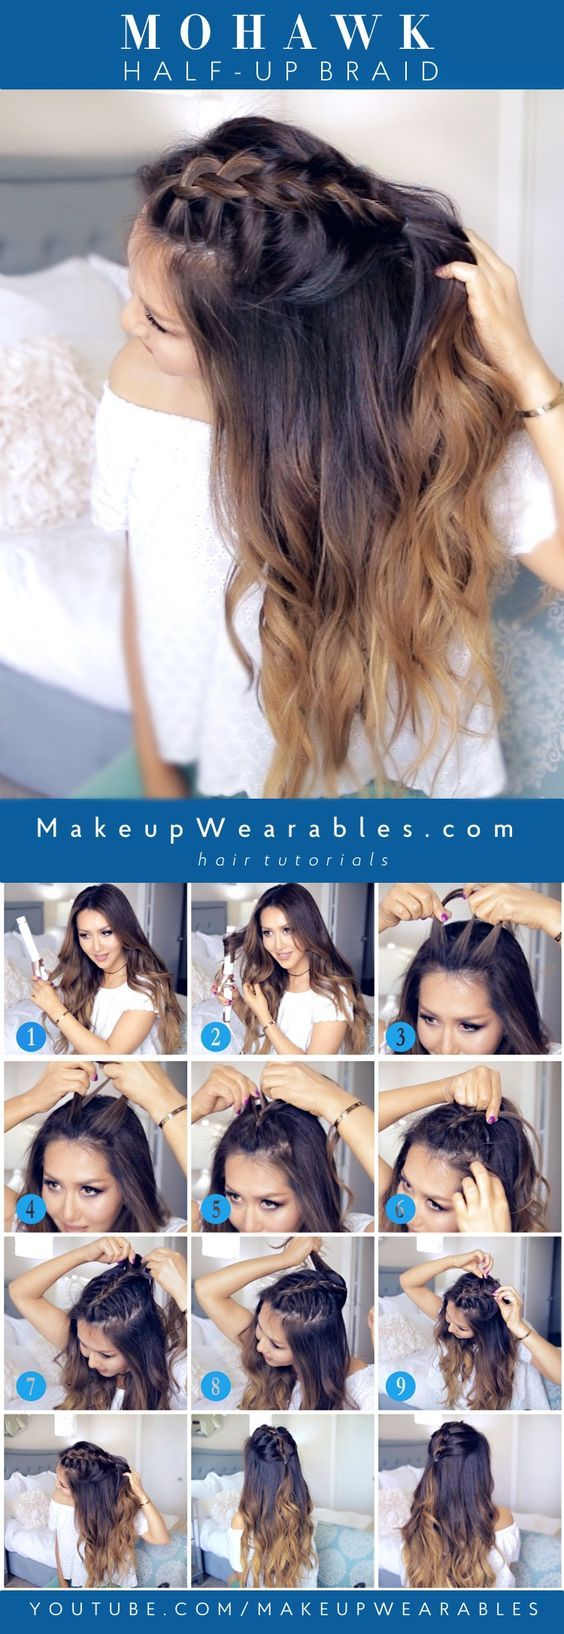 How to do a Mohawk Braid   cute Half-Up Hairstyles